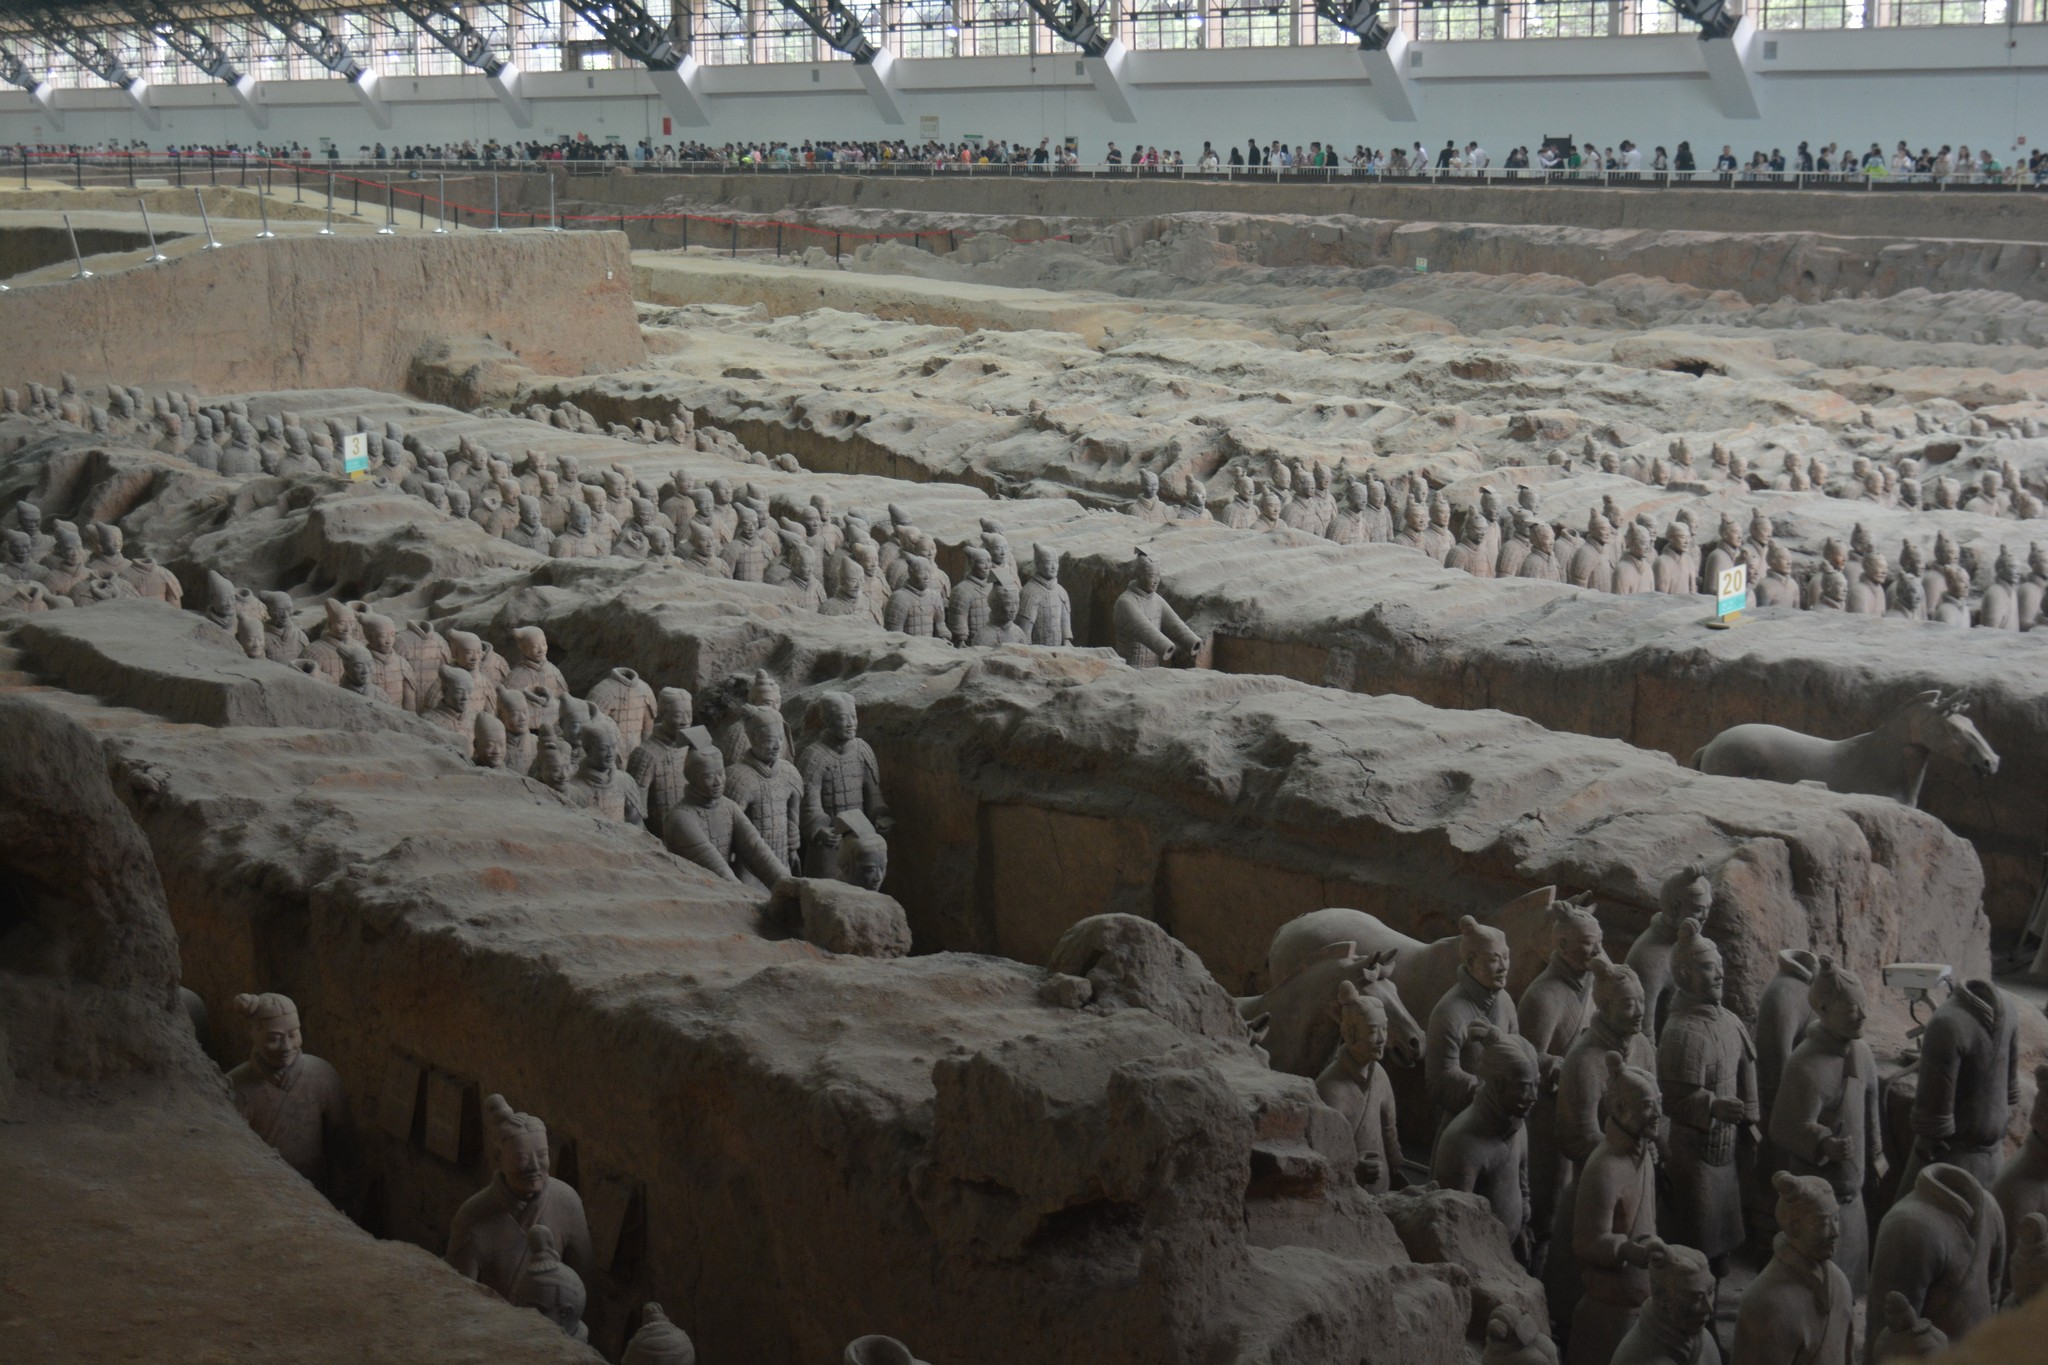 The Archaeological Site of The Terracotta Army